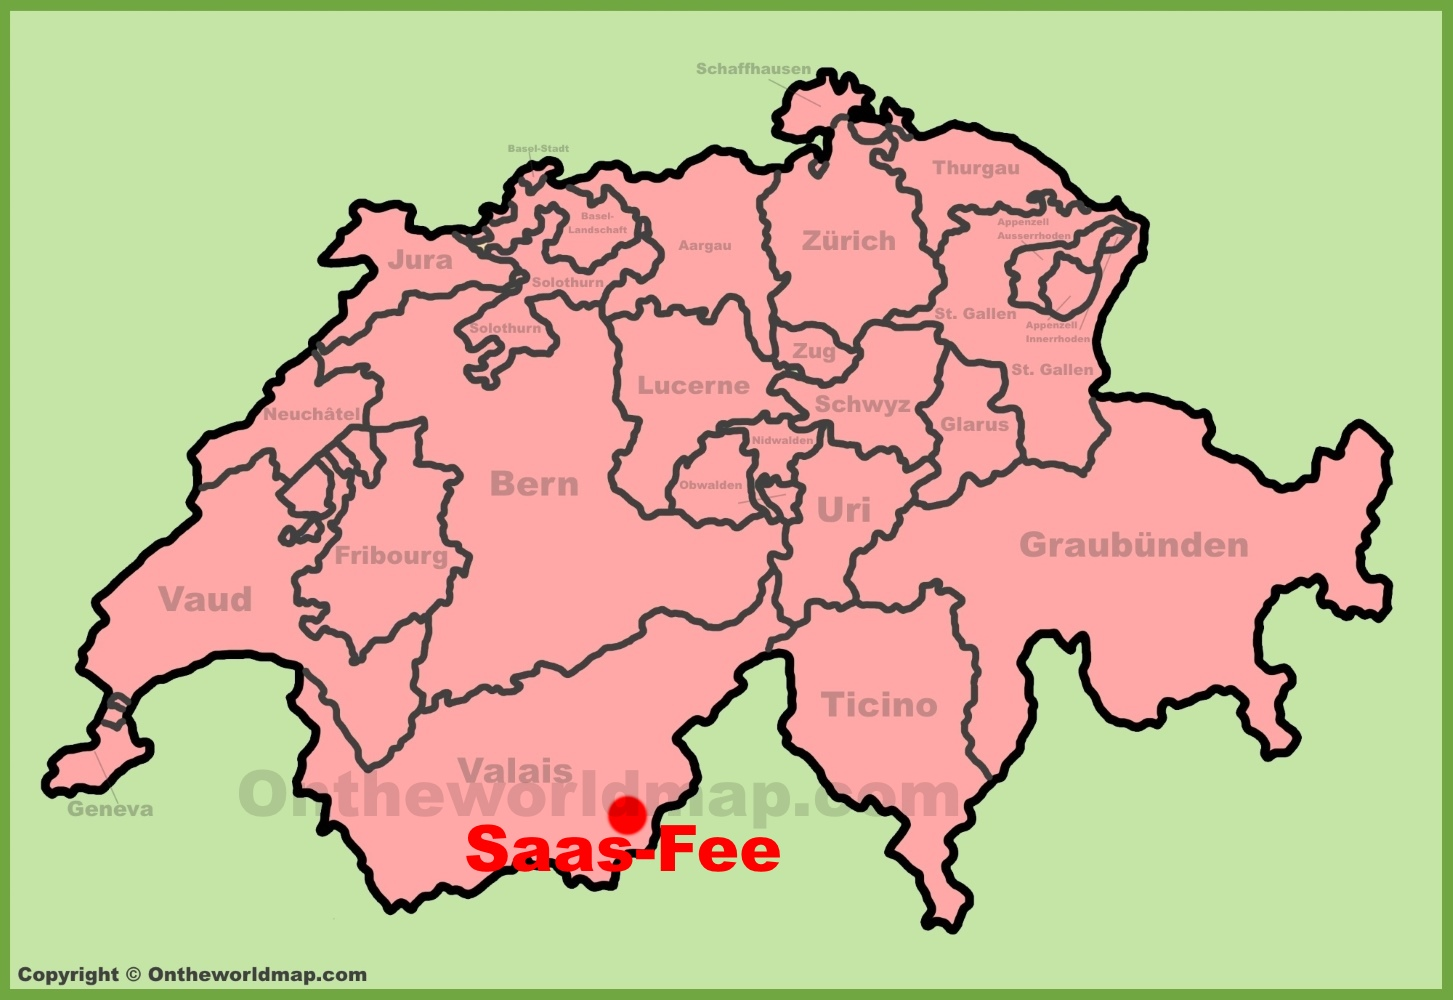 SaasFee location on the Switzerland map